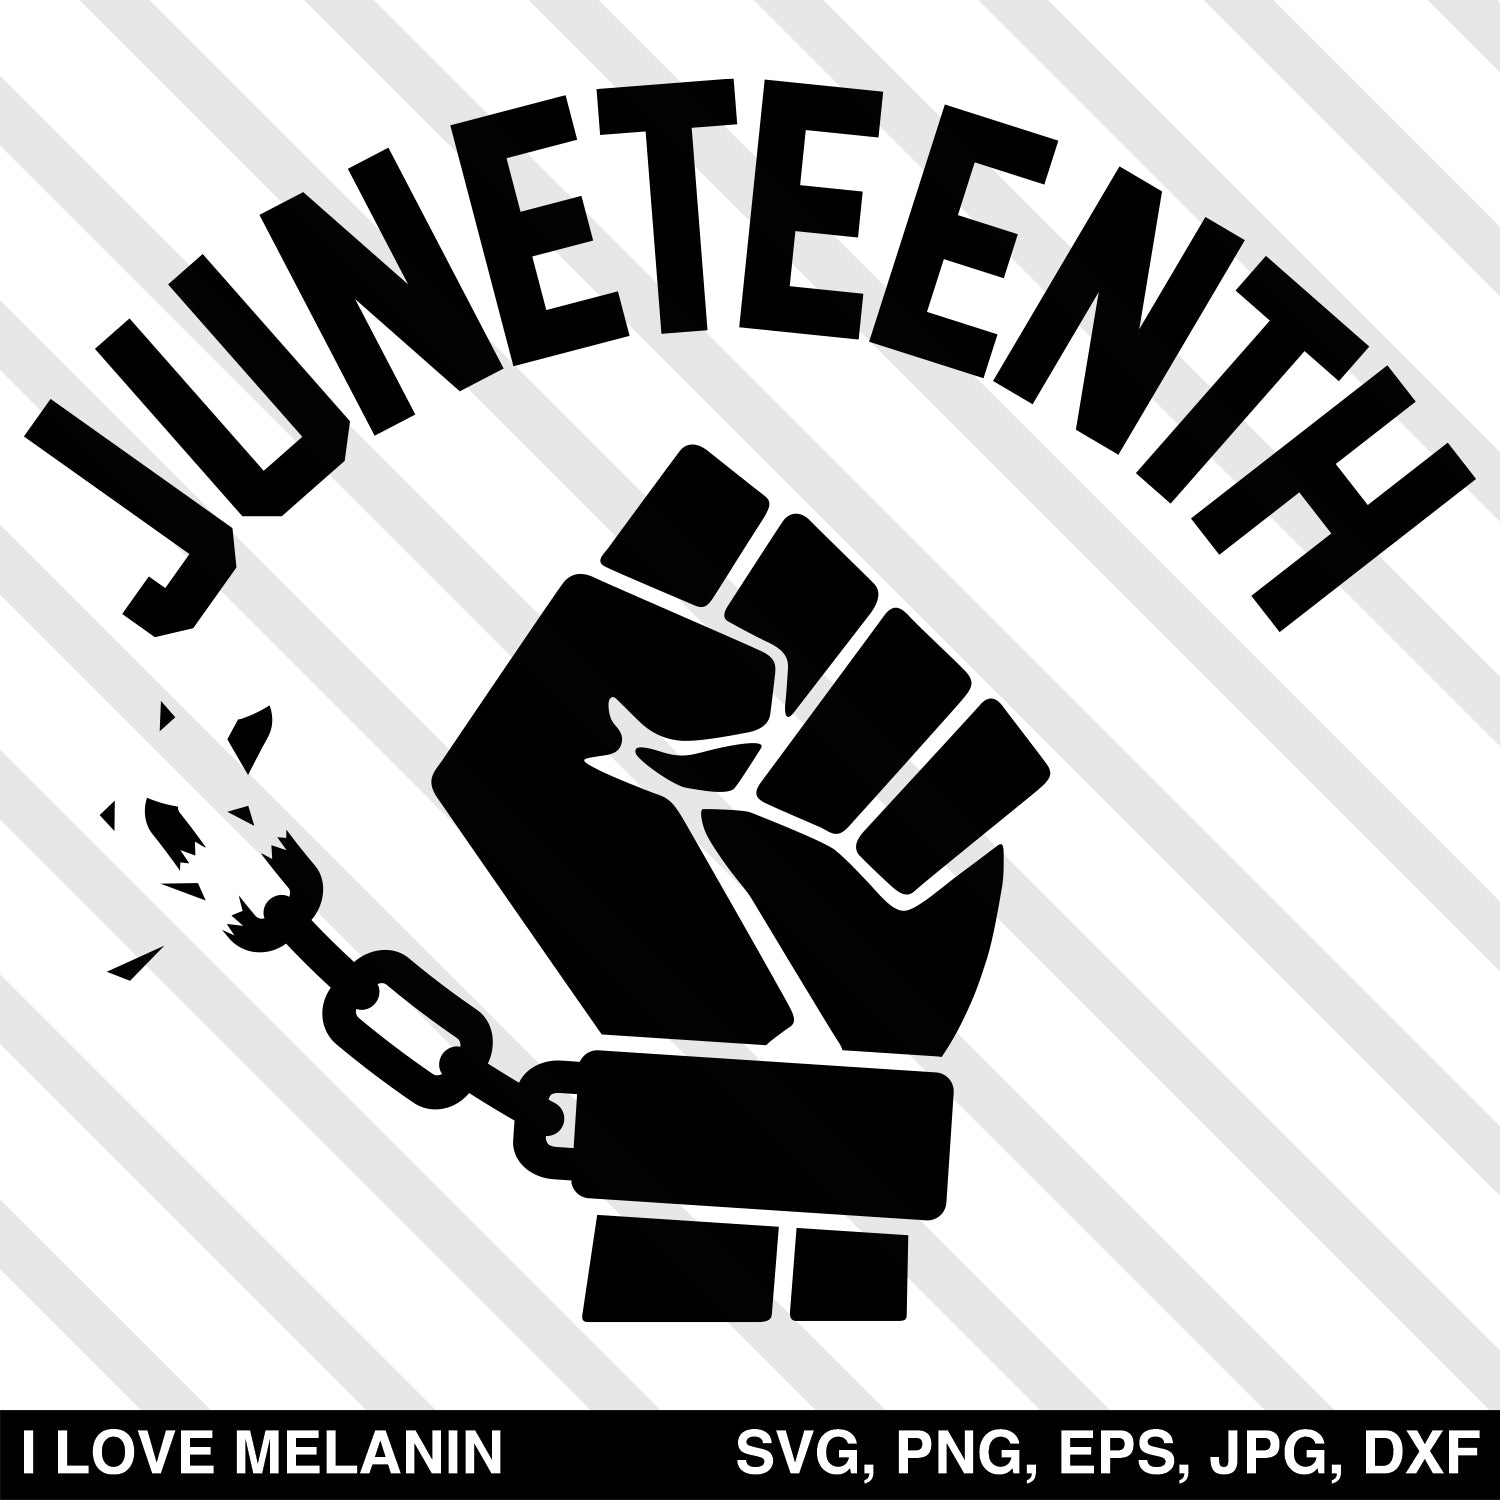 Juneteenth Freedom Fist SVG